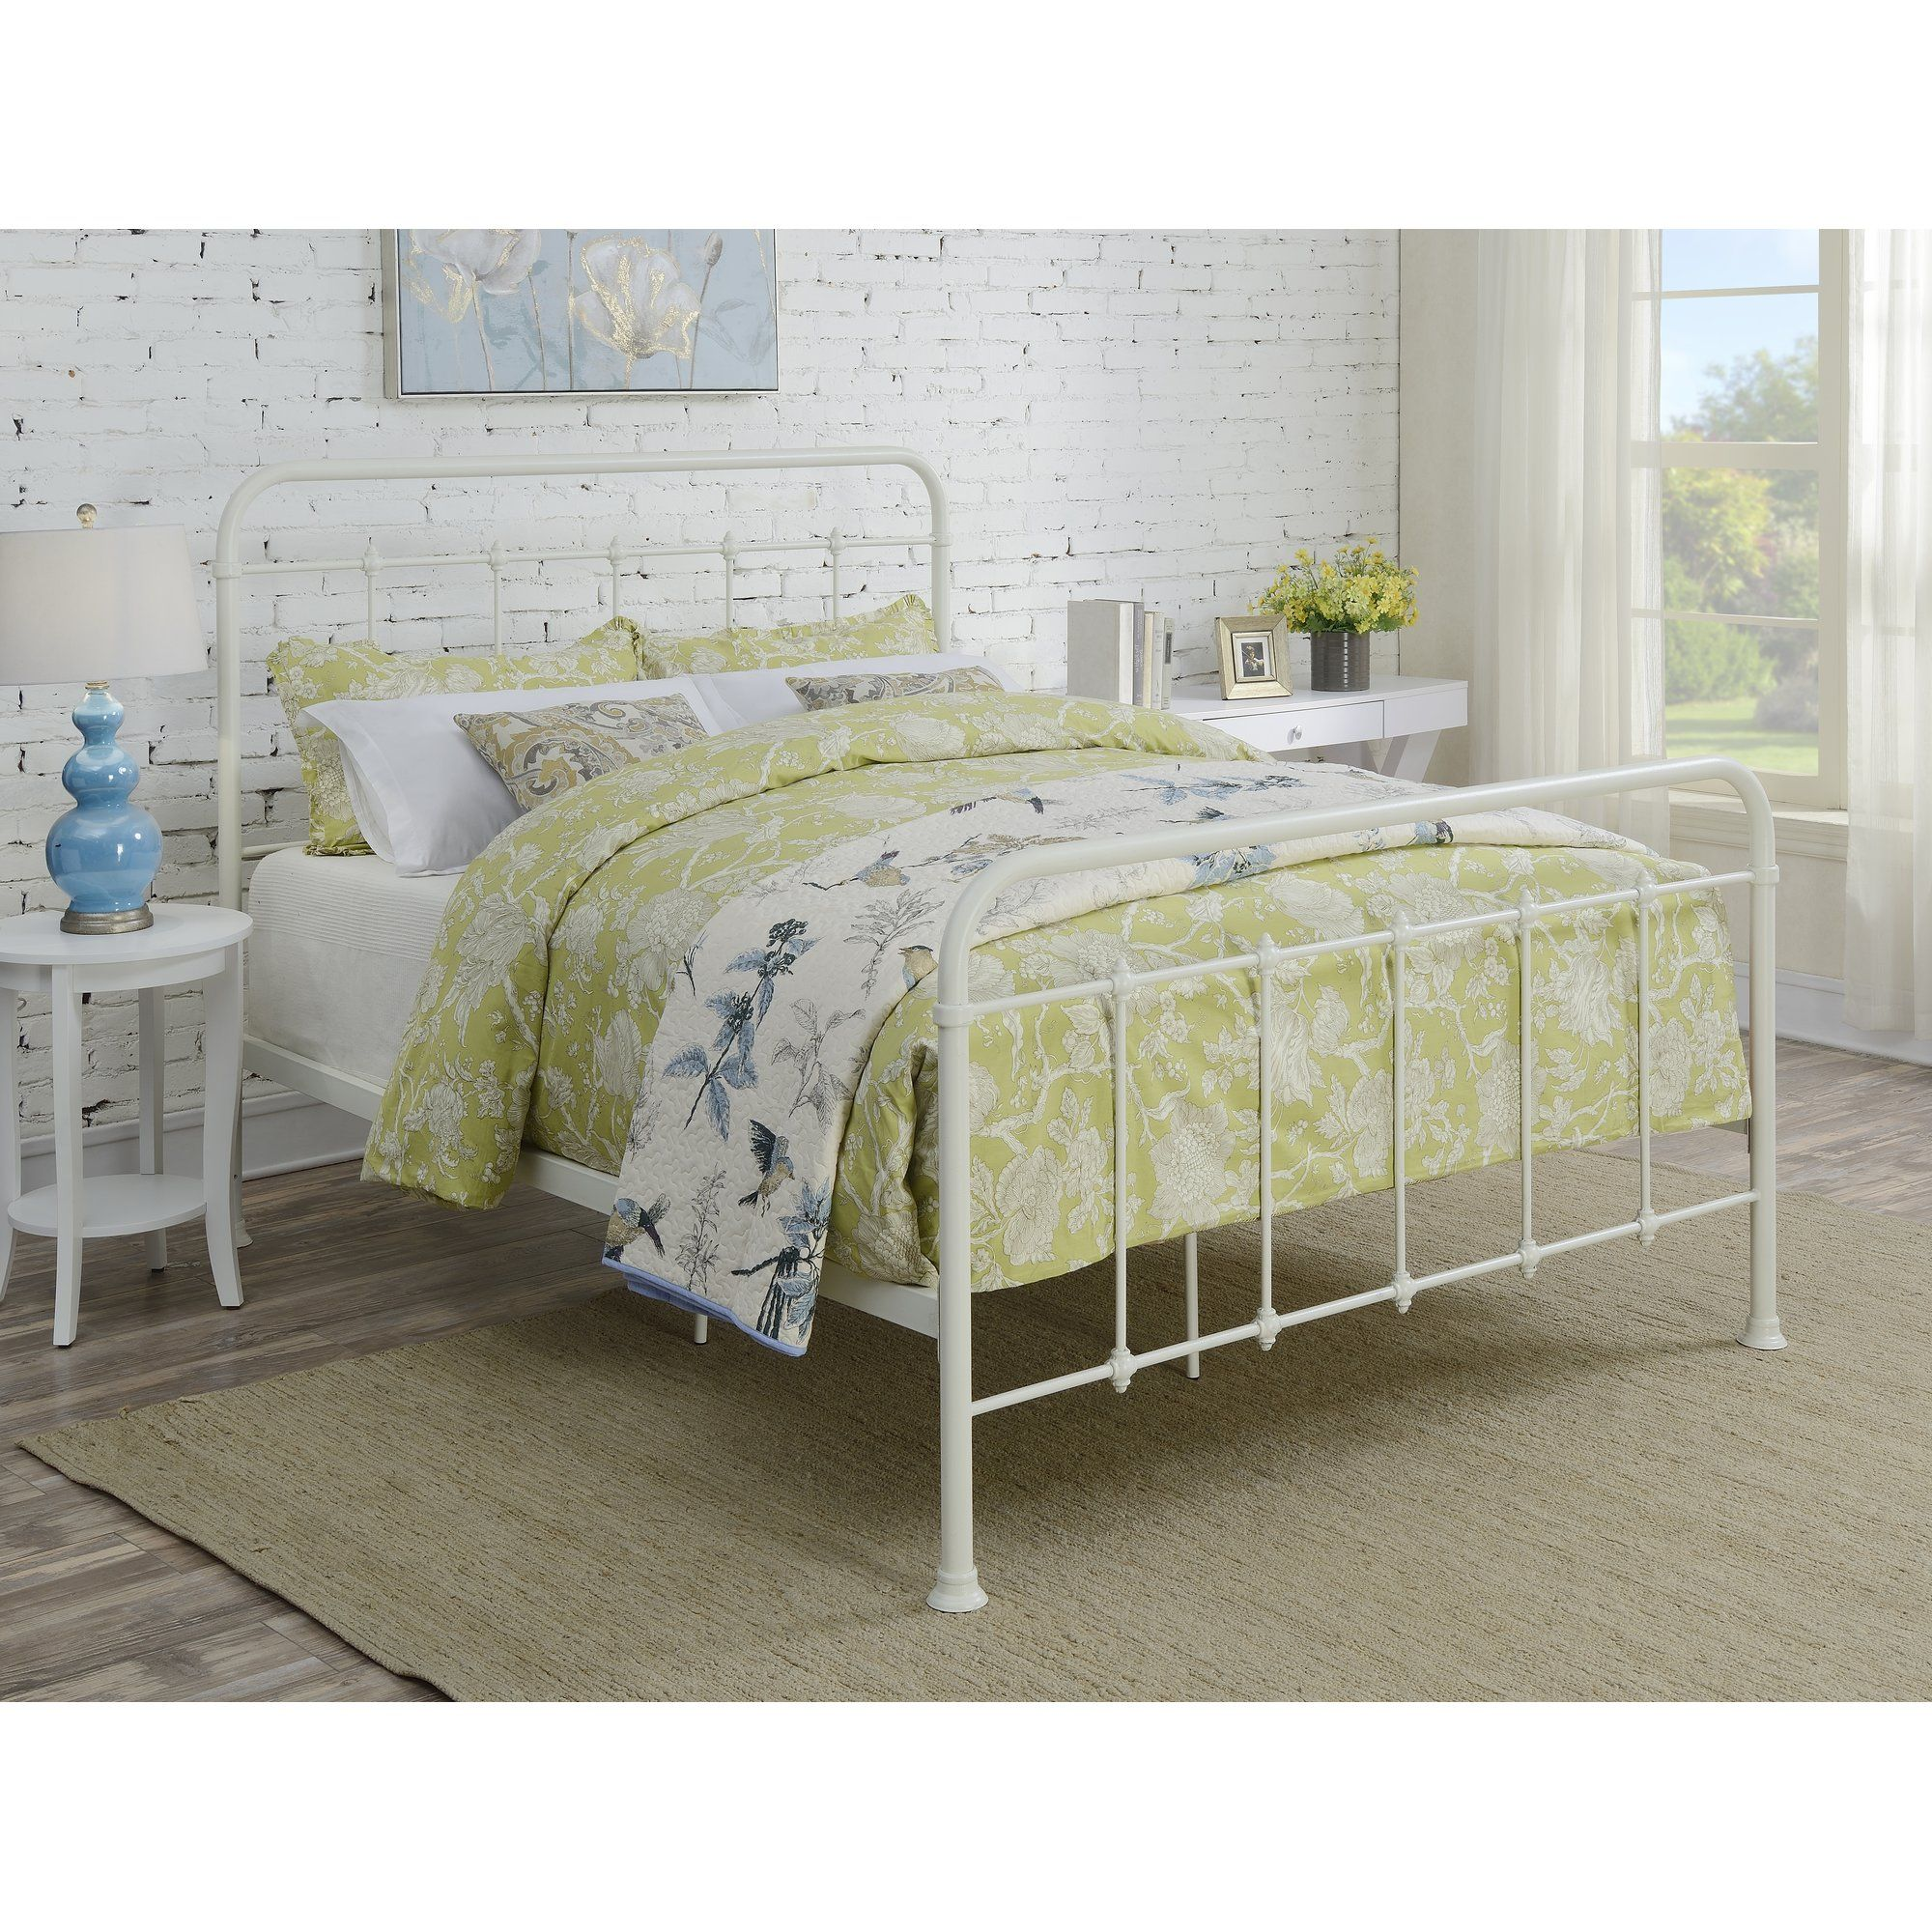 Penix Curved Metal Queen Panel Bed White metal bed